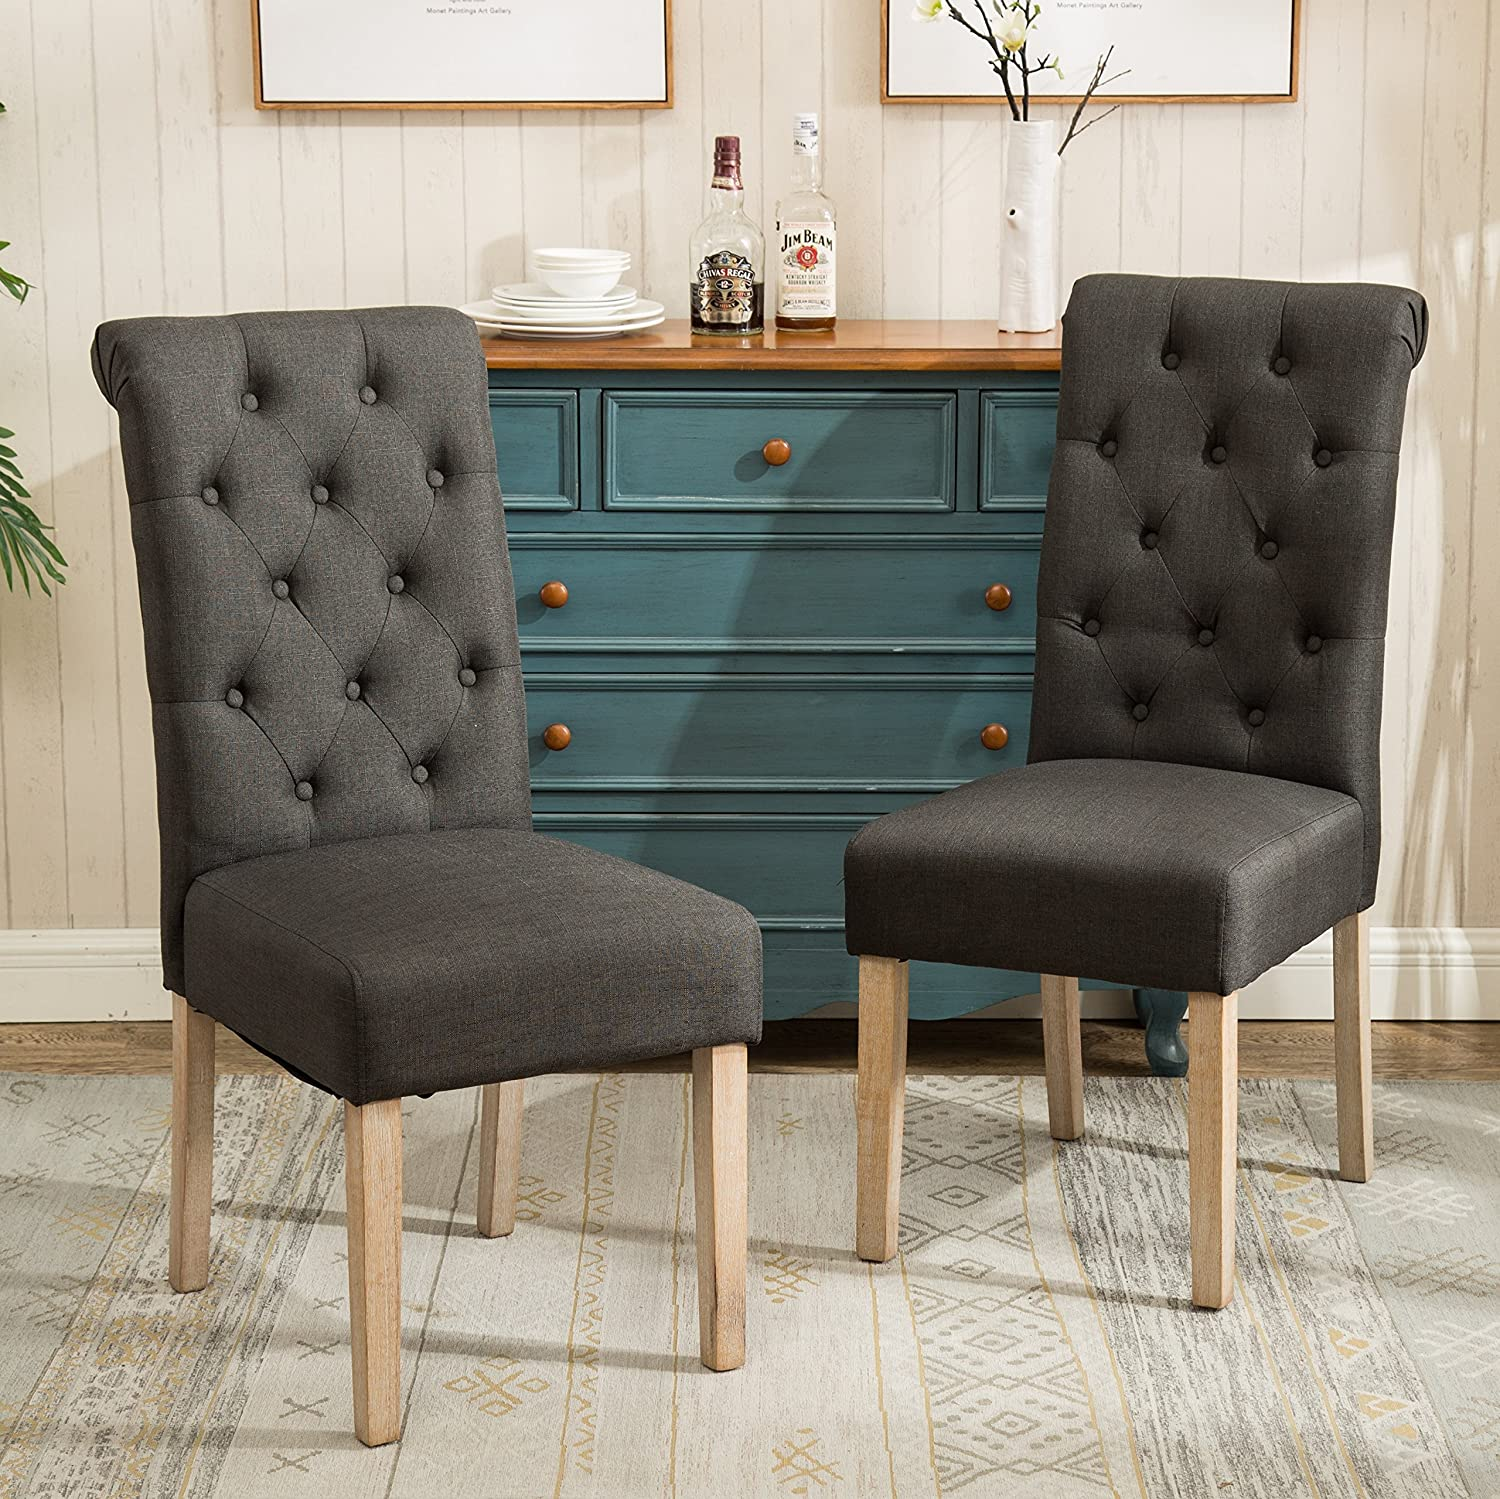 Roundhill Furniture C161CC Habit Solid Wood Tufted Parsons Charcoal Dining Chair, Set of 2